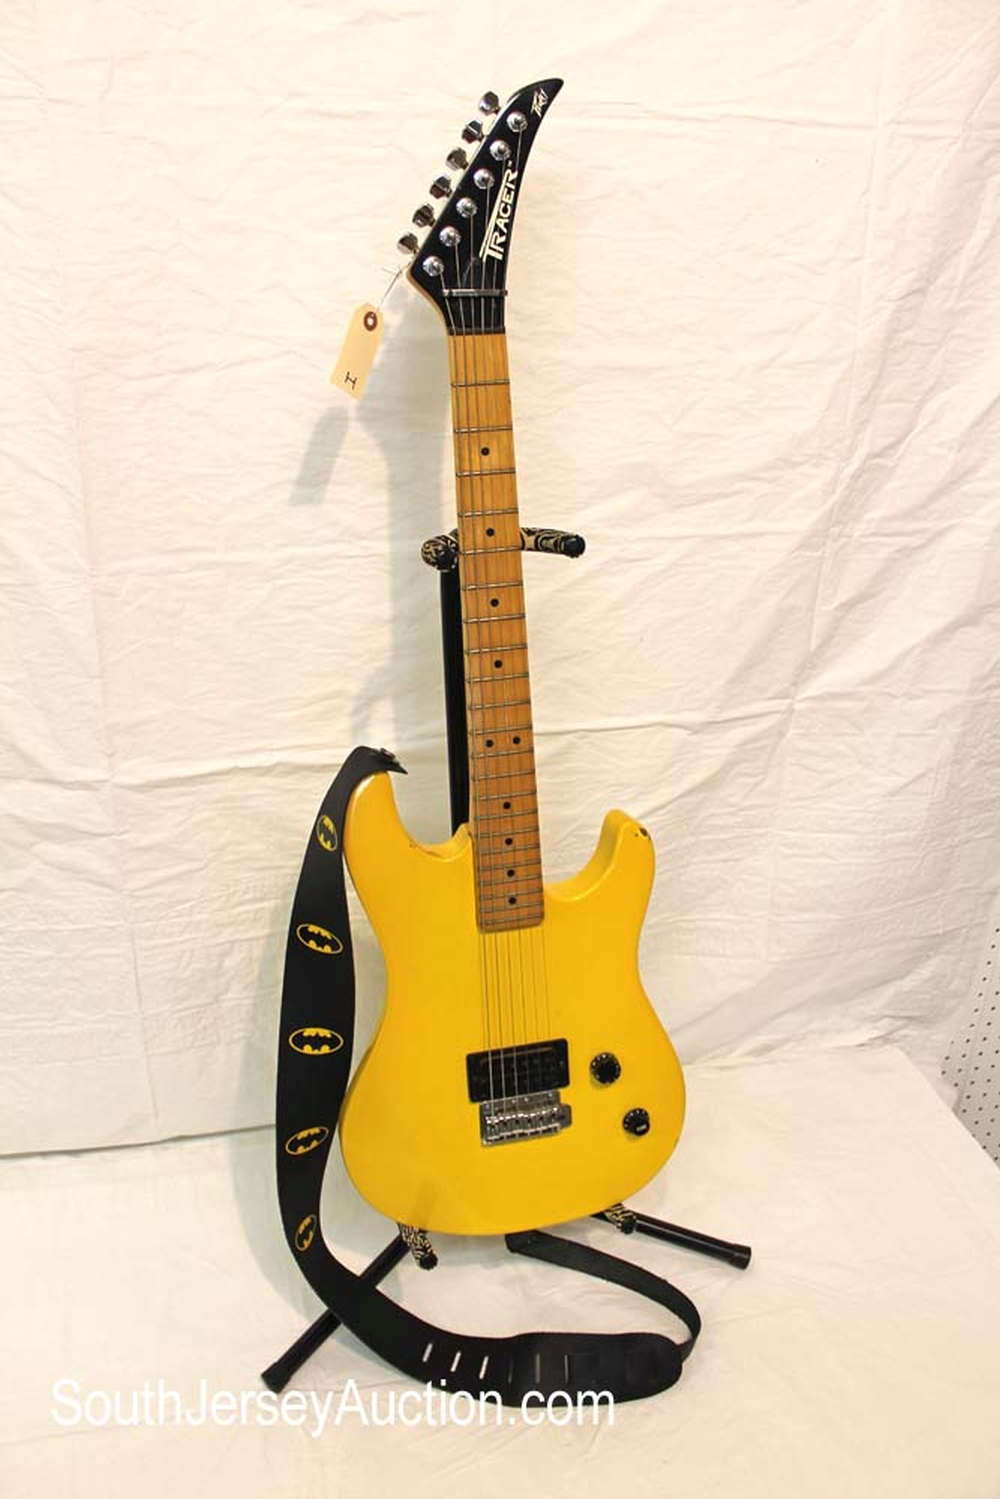 1980's Peavey Tracer in the yellow, with batman strap, made in the US, fair condition with some chips and missing back plate s/n 03379067